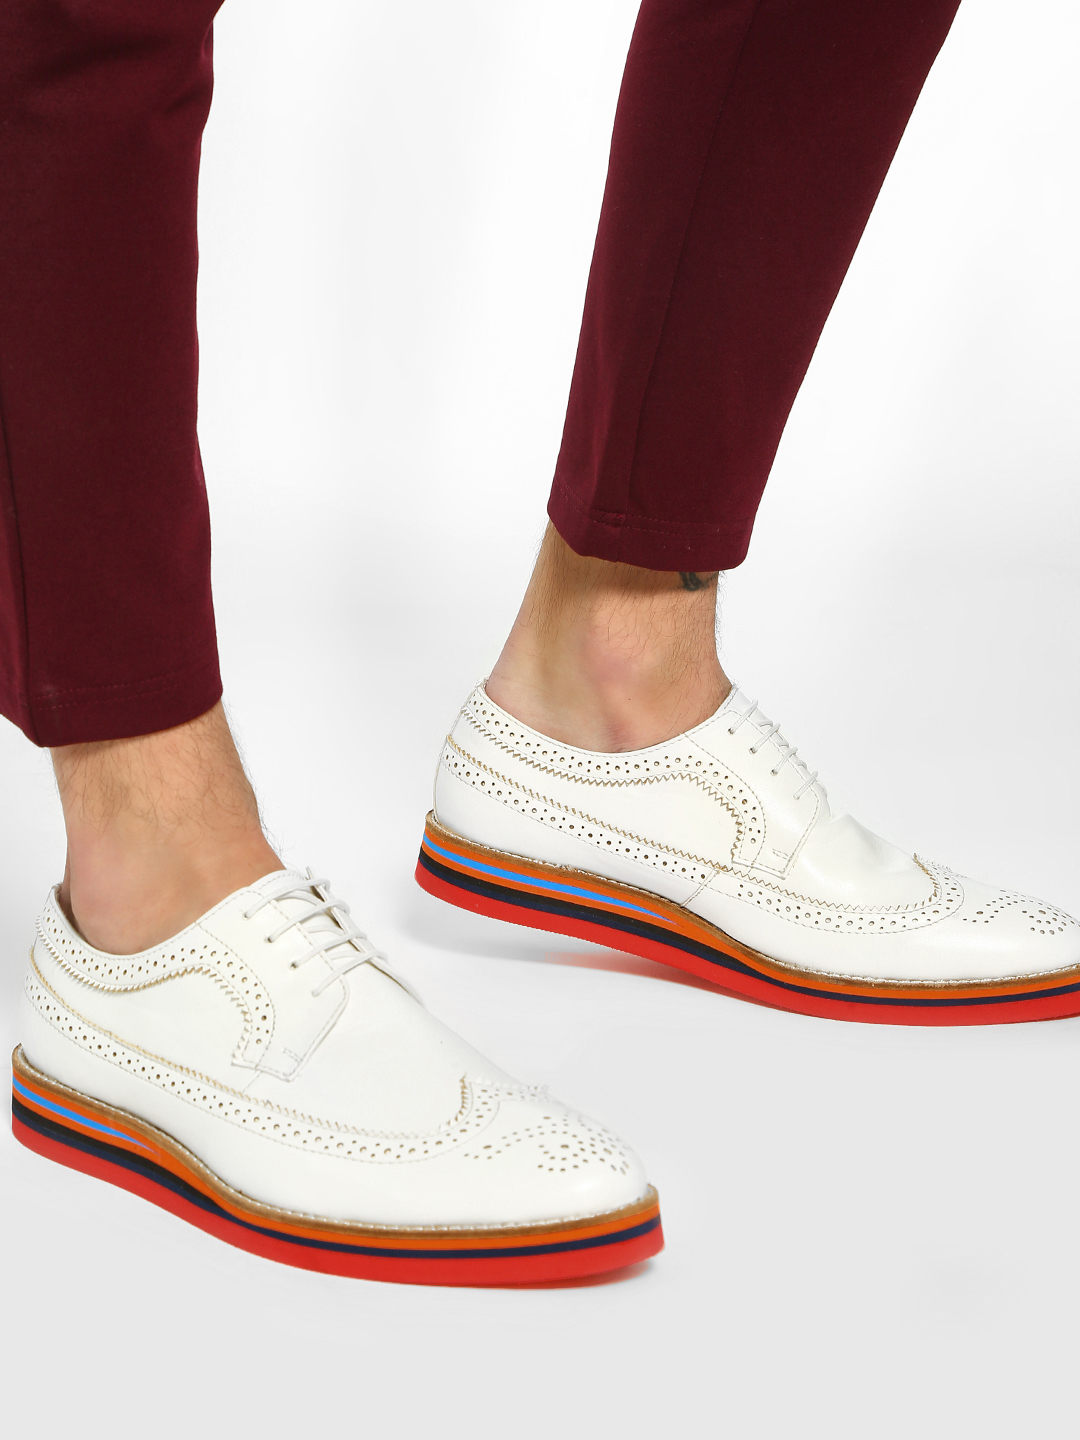 Bolt Of The Good Stuff White Contrast Sole Brogue Derby Shoes 1